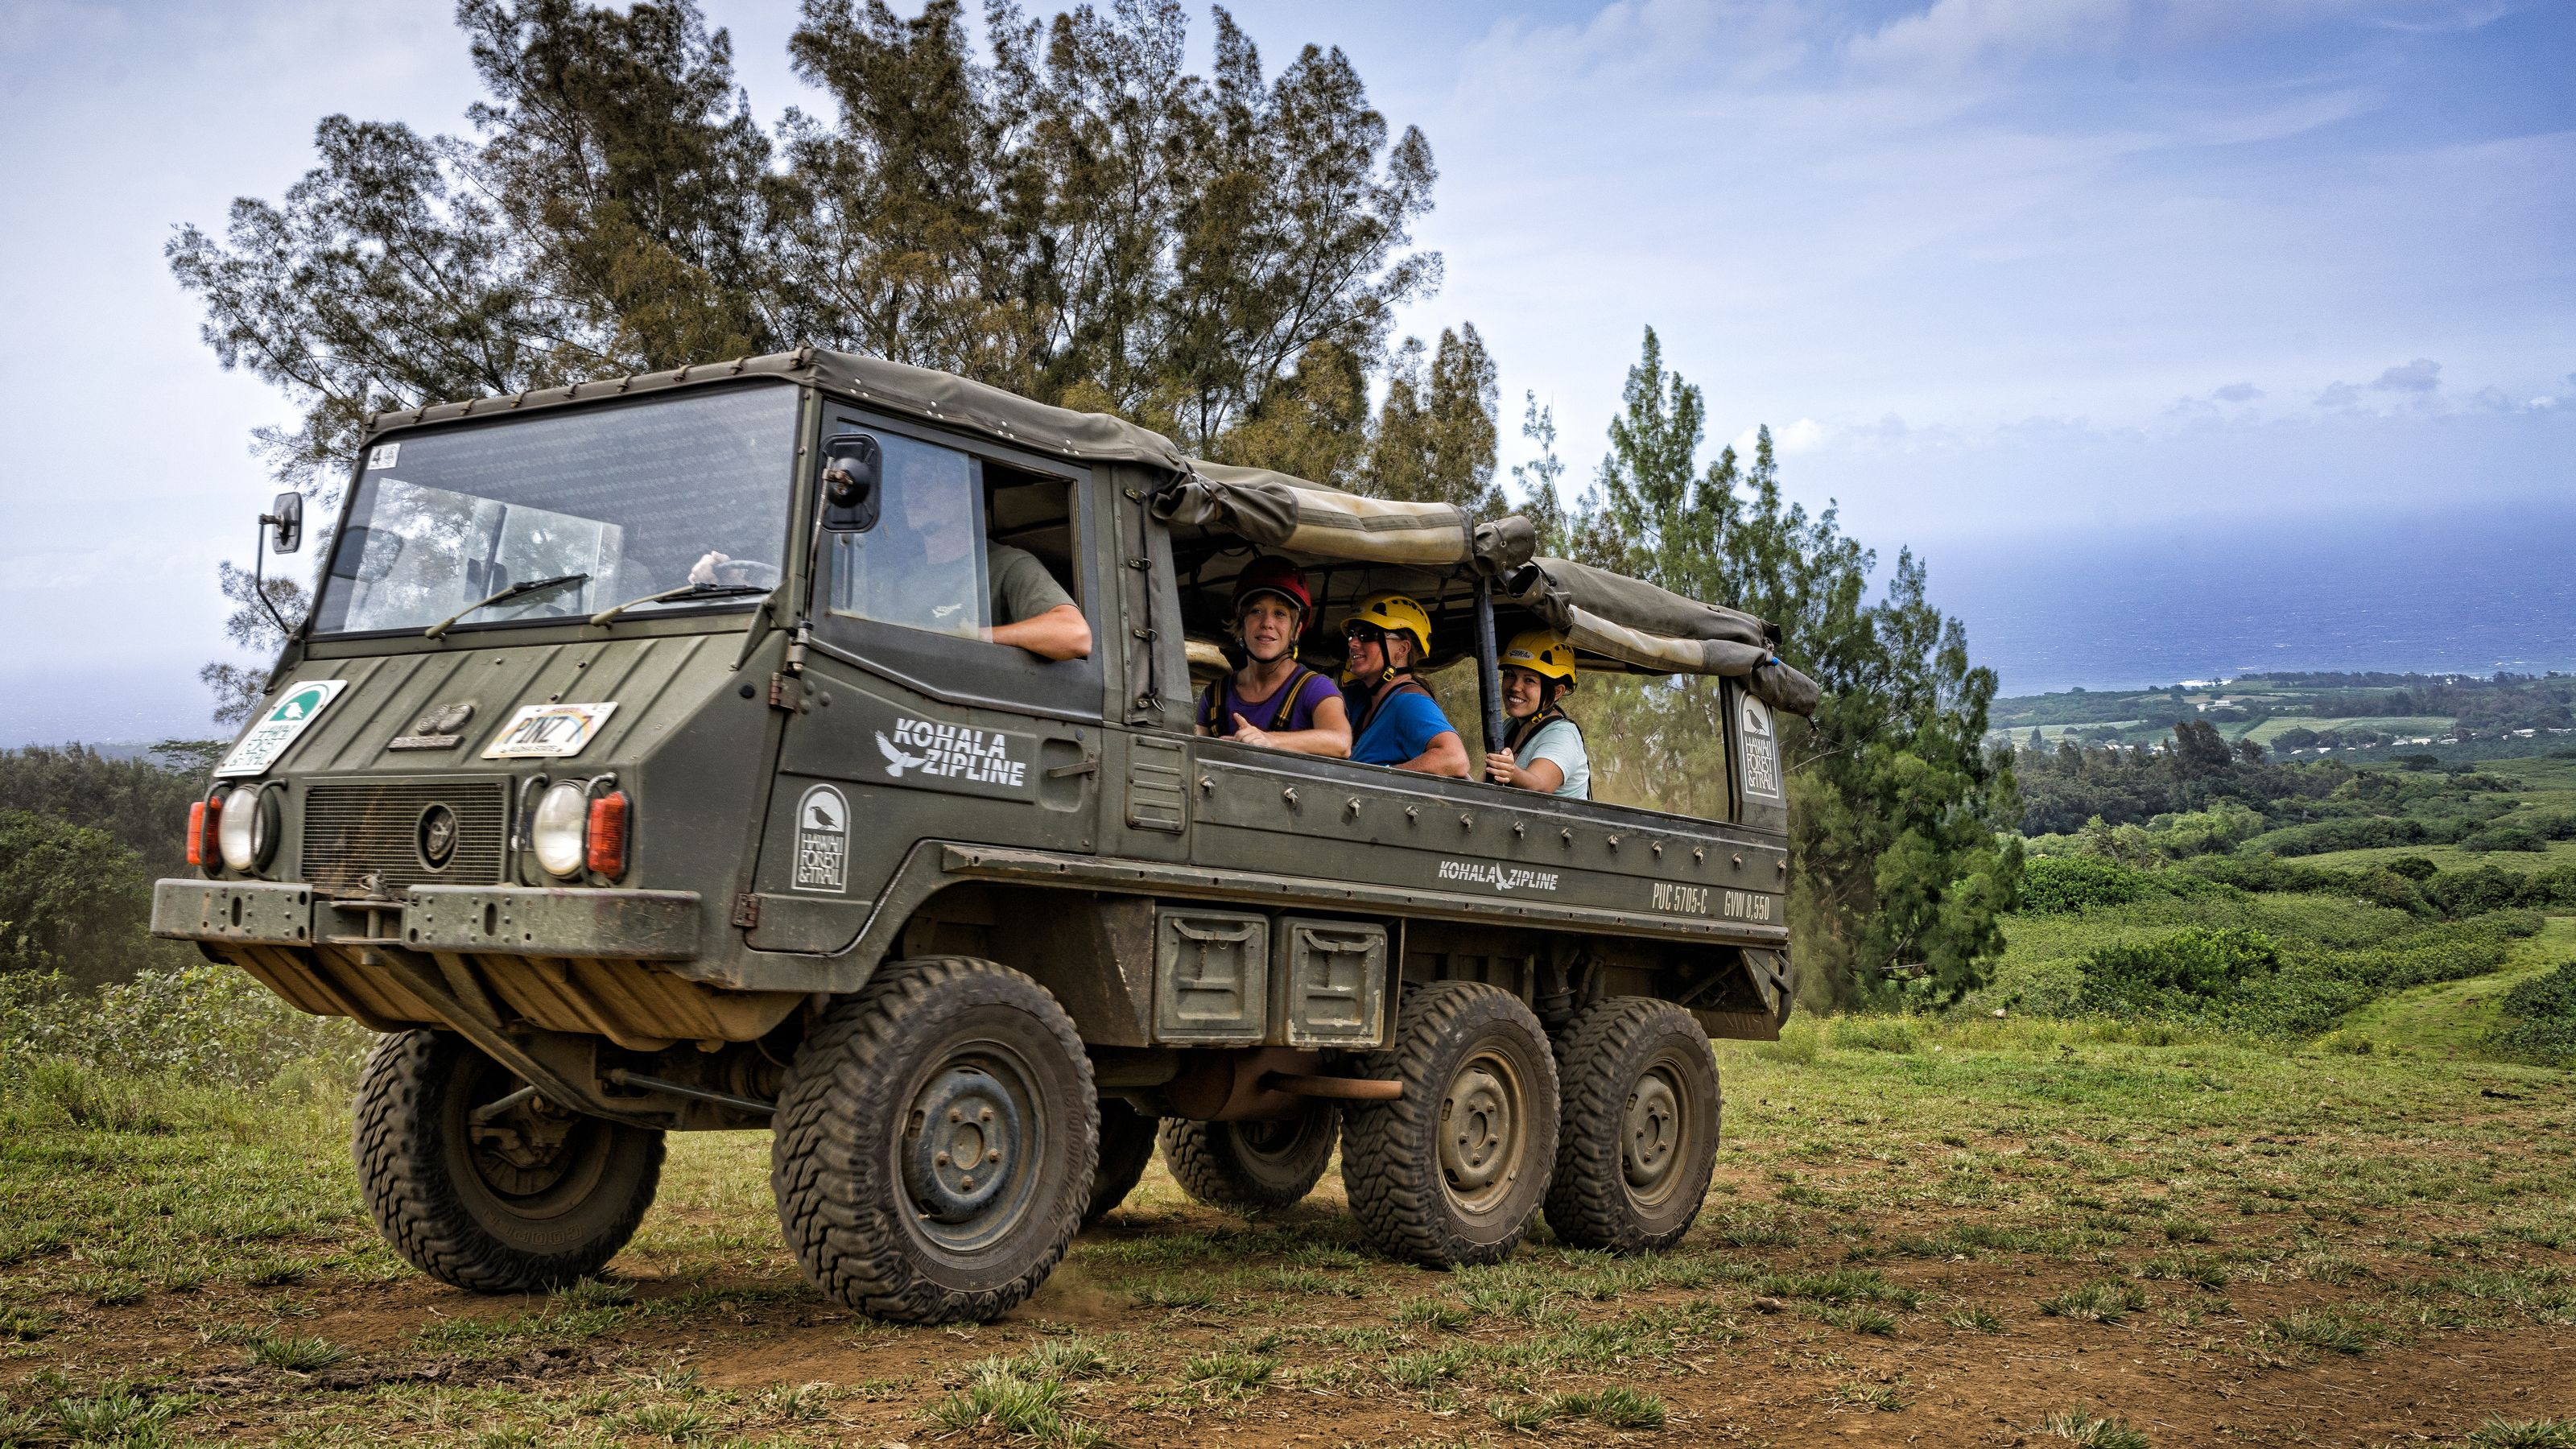 People in a truck on their way to a ziplining course in Hawaii